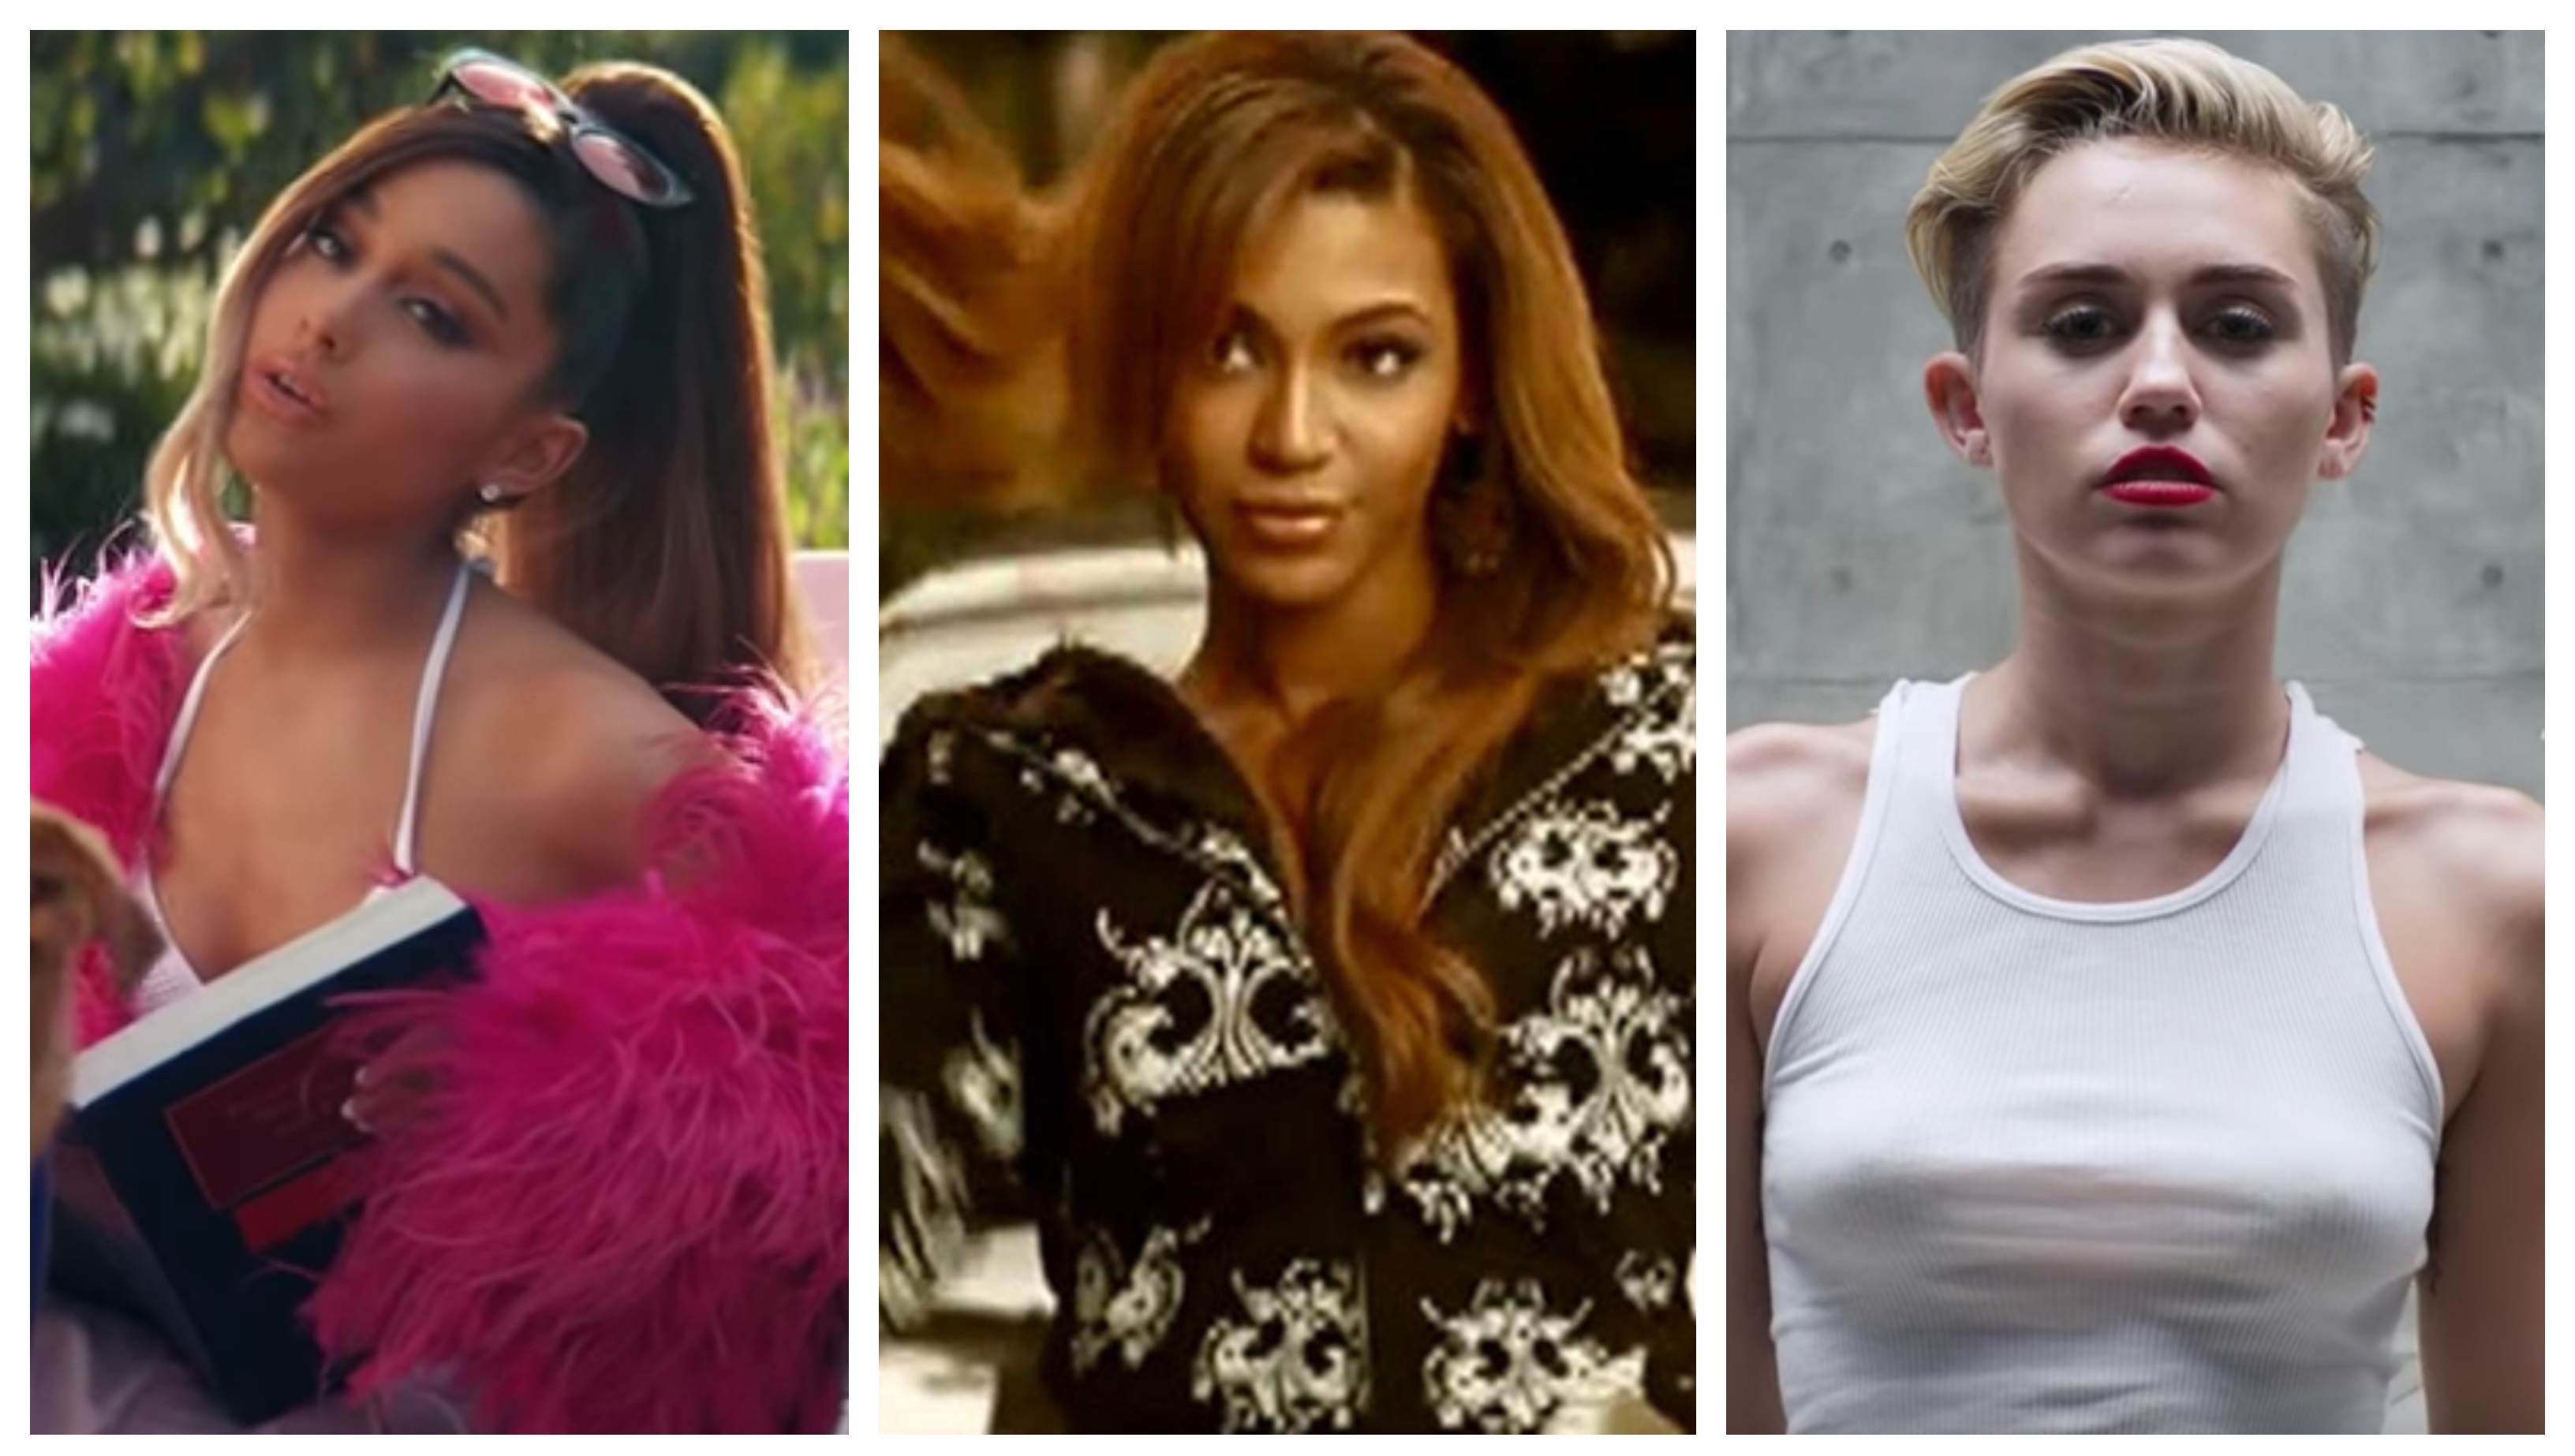 A split image of Ariana Grande, Beyonce and Miley Cyrus